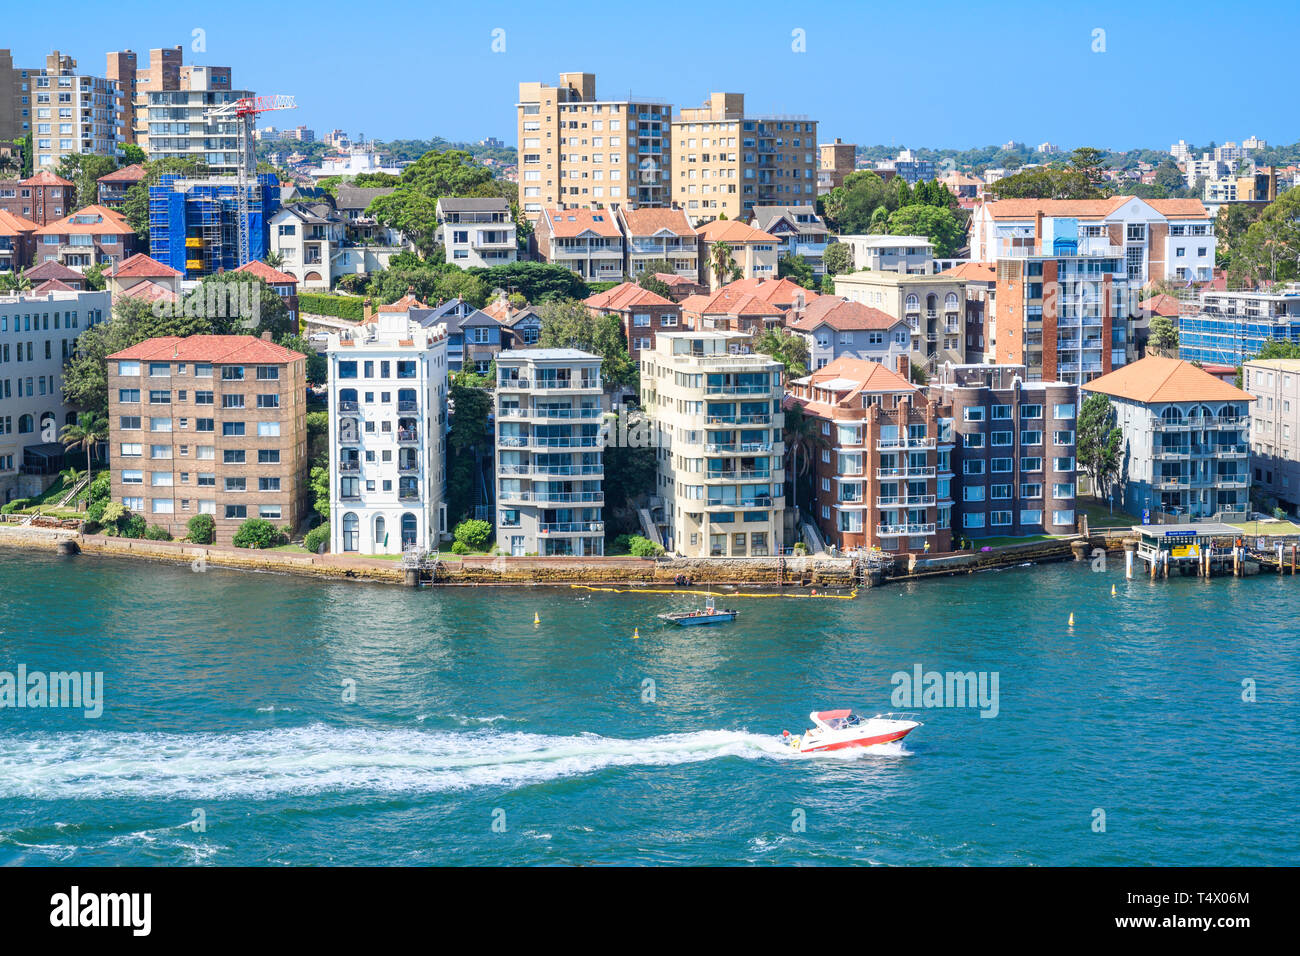 Kirribilli is a suburb of Sydney, Australia, located on the Lower North Shore of Sydney Harbour. - Stock Image